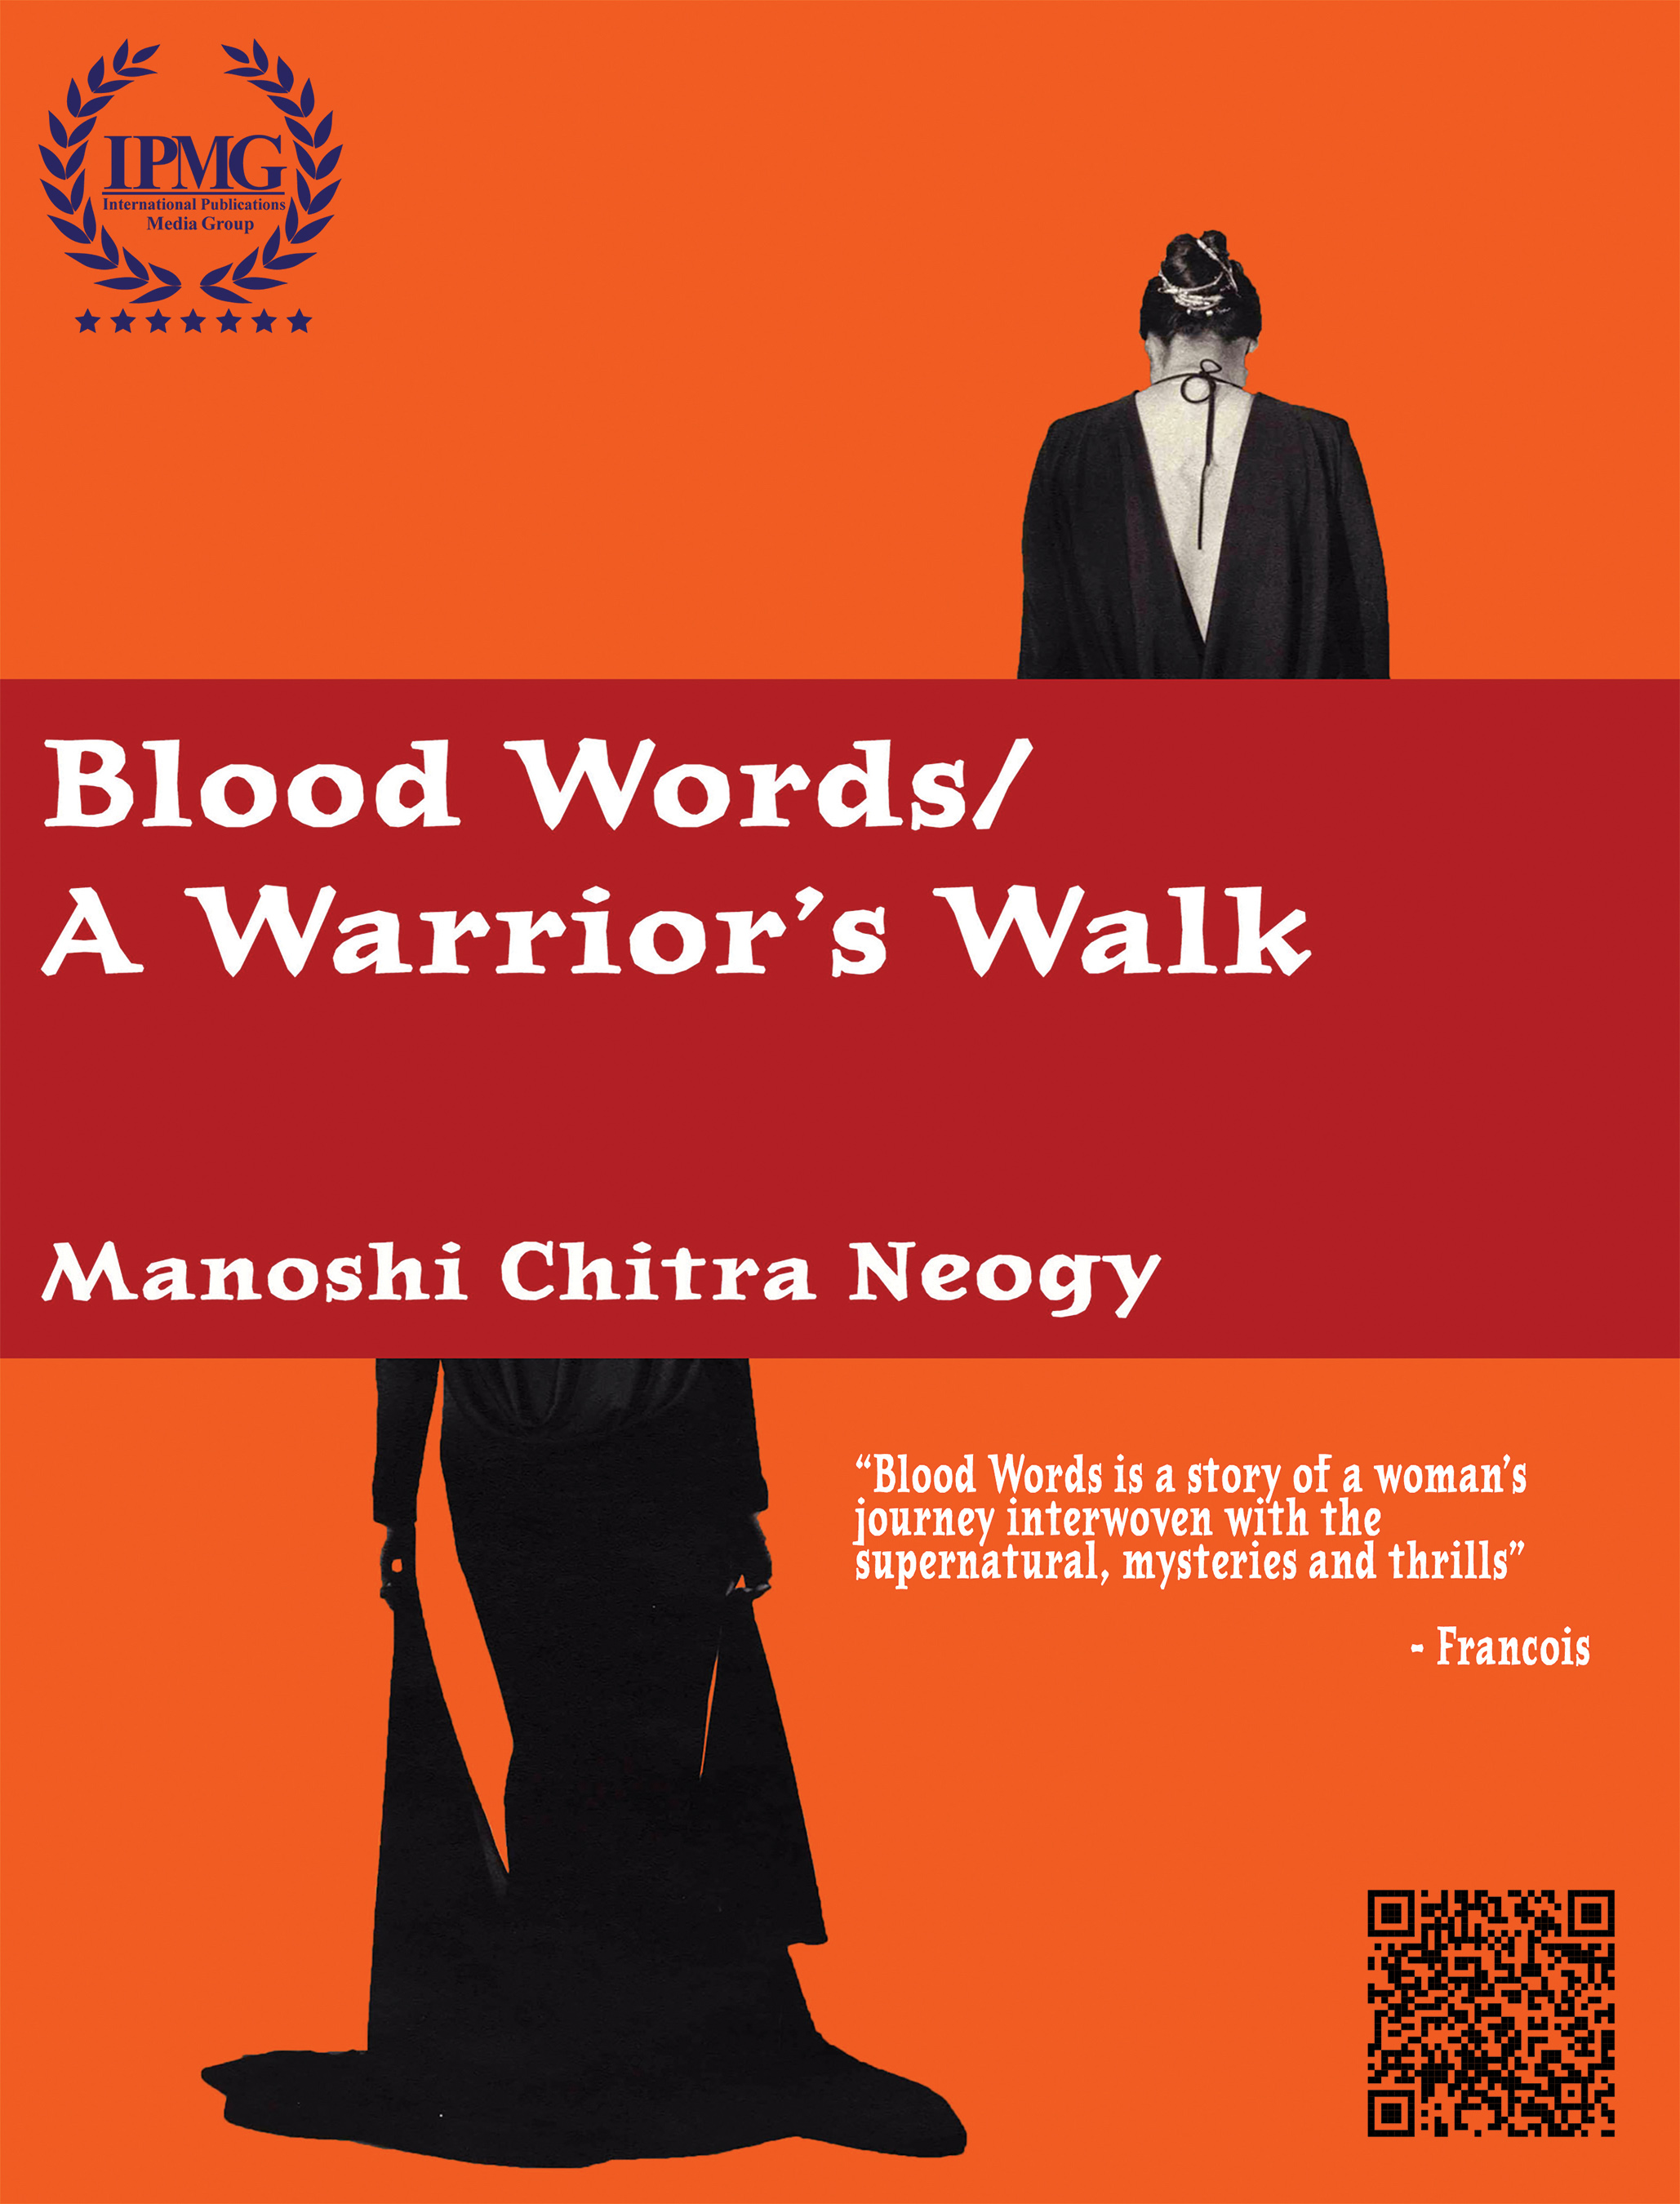 Blood Words: A Warrior's Walk by Manoshi Chitra Neogy, a poetic women's fiction novel